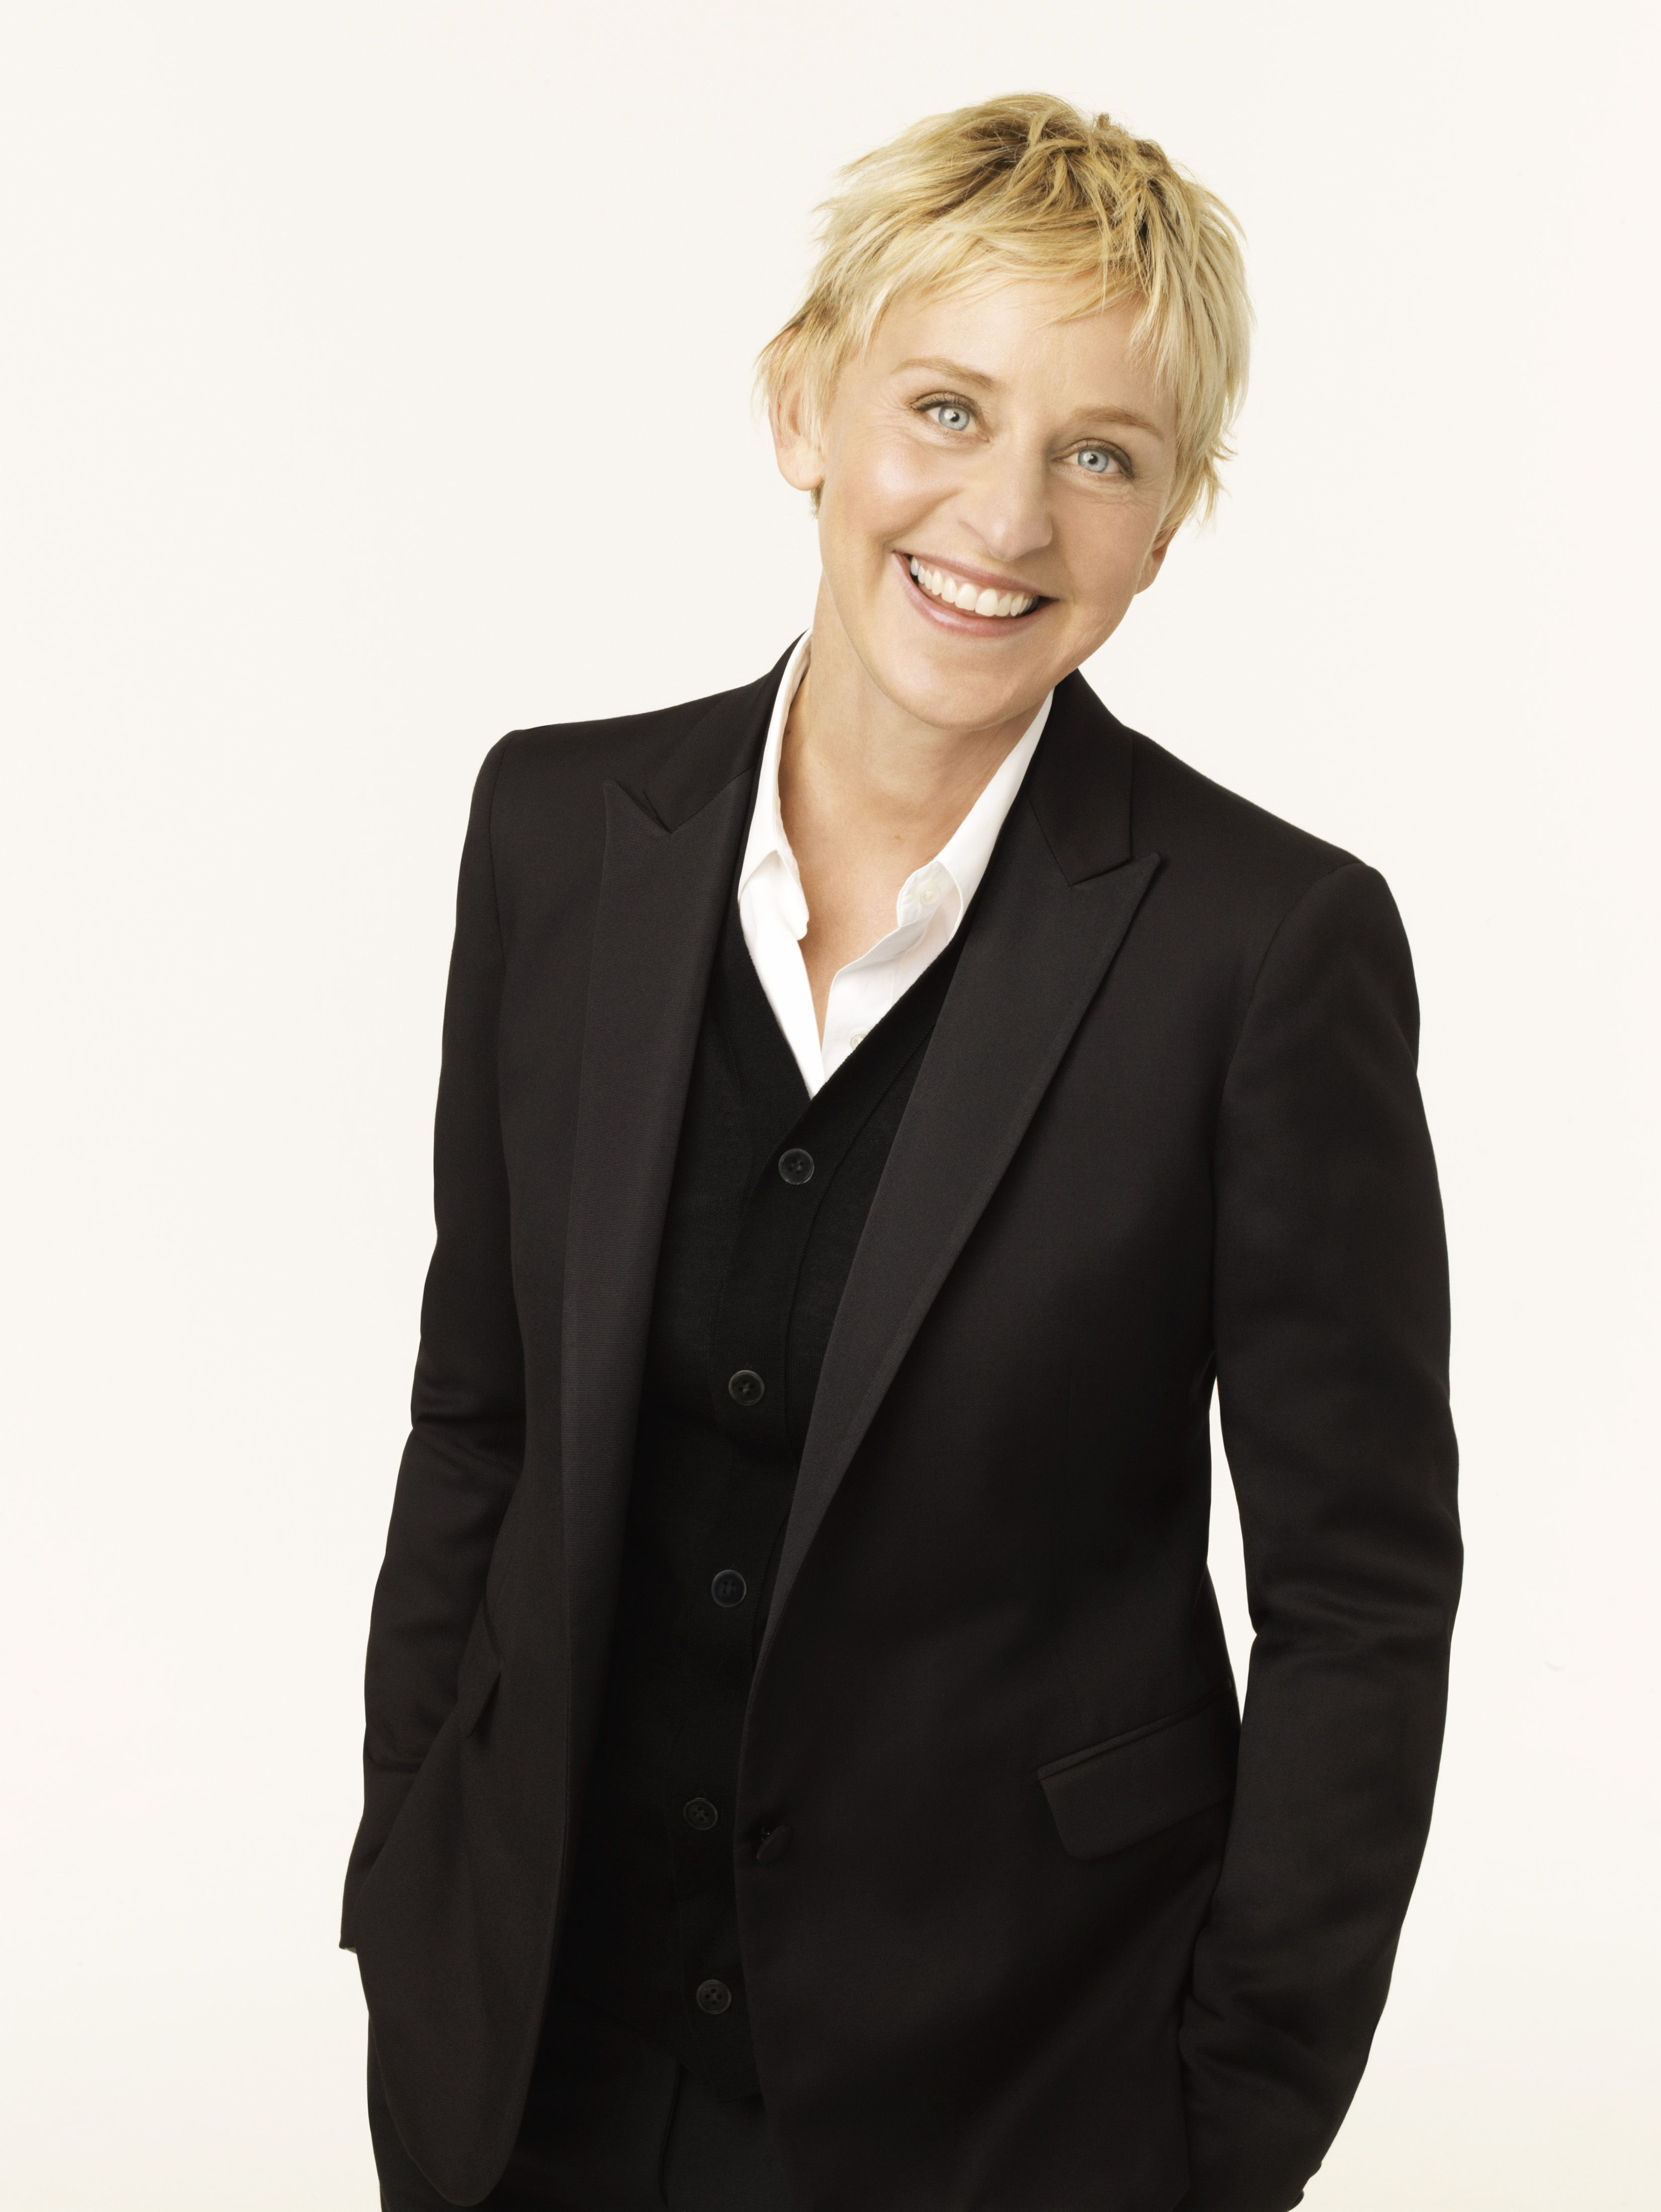 The latest Tweets from Ellen DeGeneres TheEllenShow Comedian talk show host and ice road trucker My tweets are real and theyre spectacular California